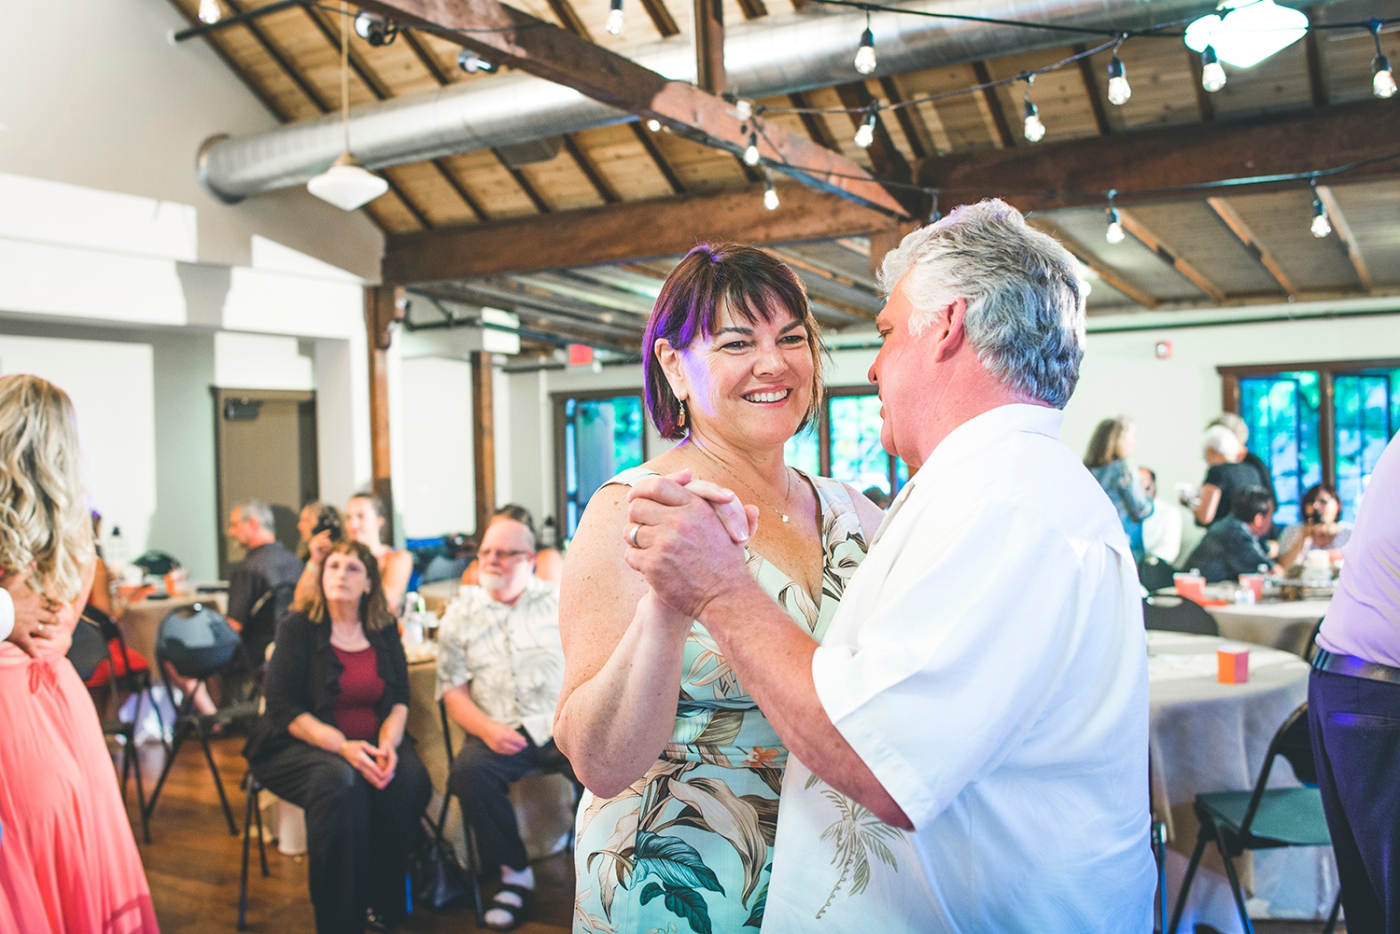 Jane_S_Seattle_photography_Kadie_and_Steve_2016_Des_Moines_Marina_Wedding_DSC_2274